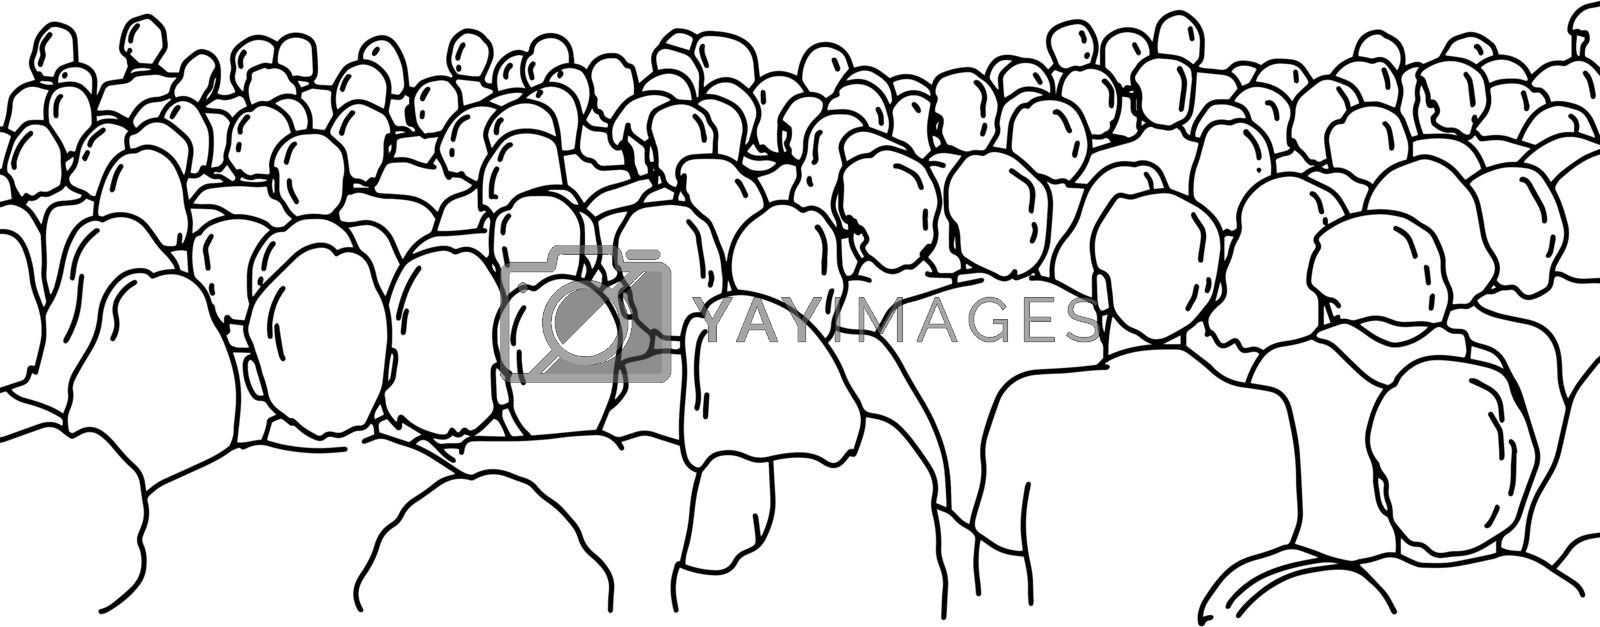 Back view of people watching a performance vector illustration sketch doodle hand drawn with black lines isolated on white background